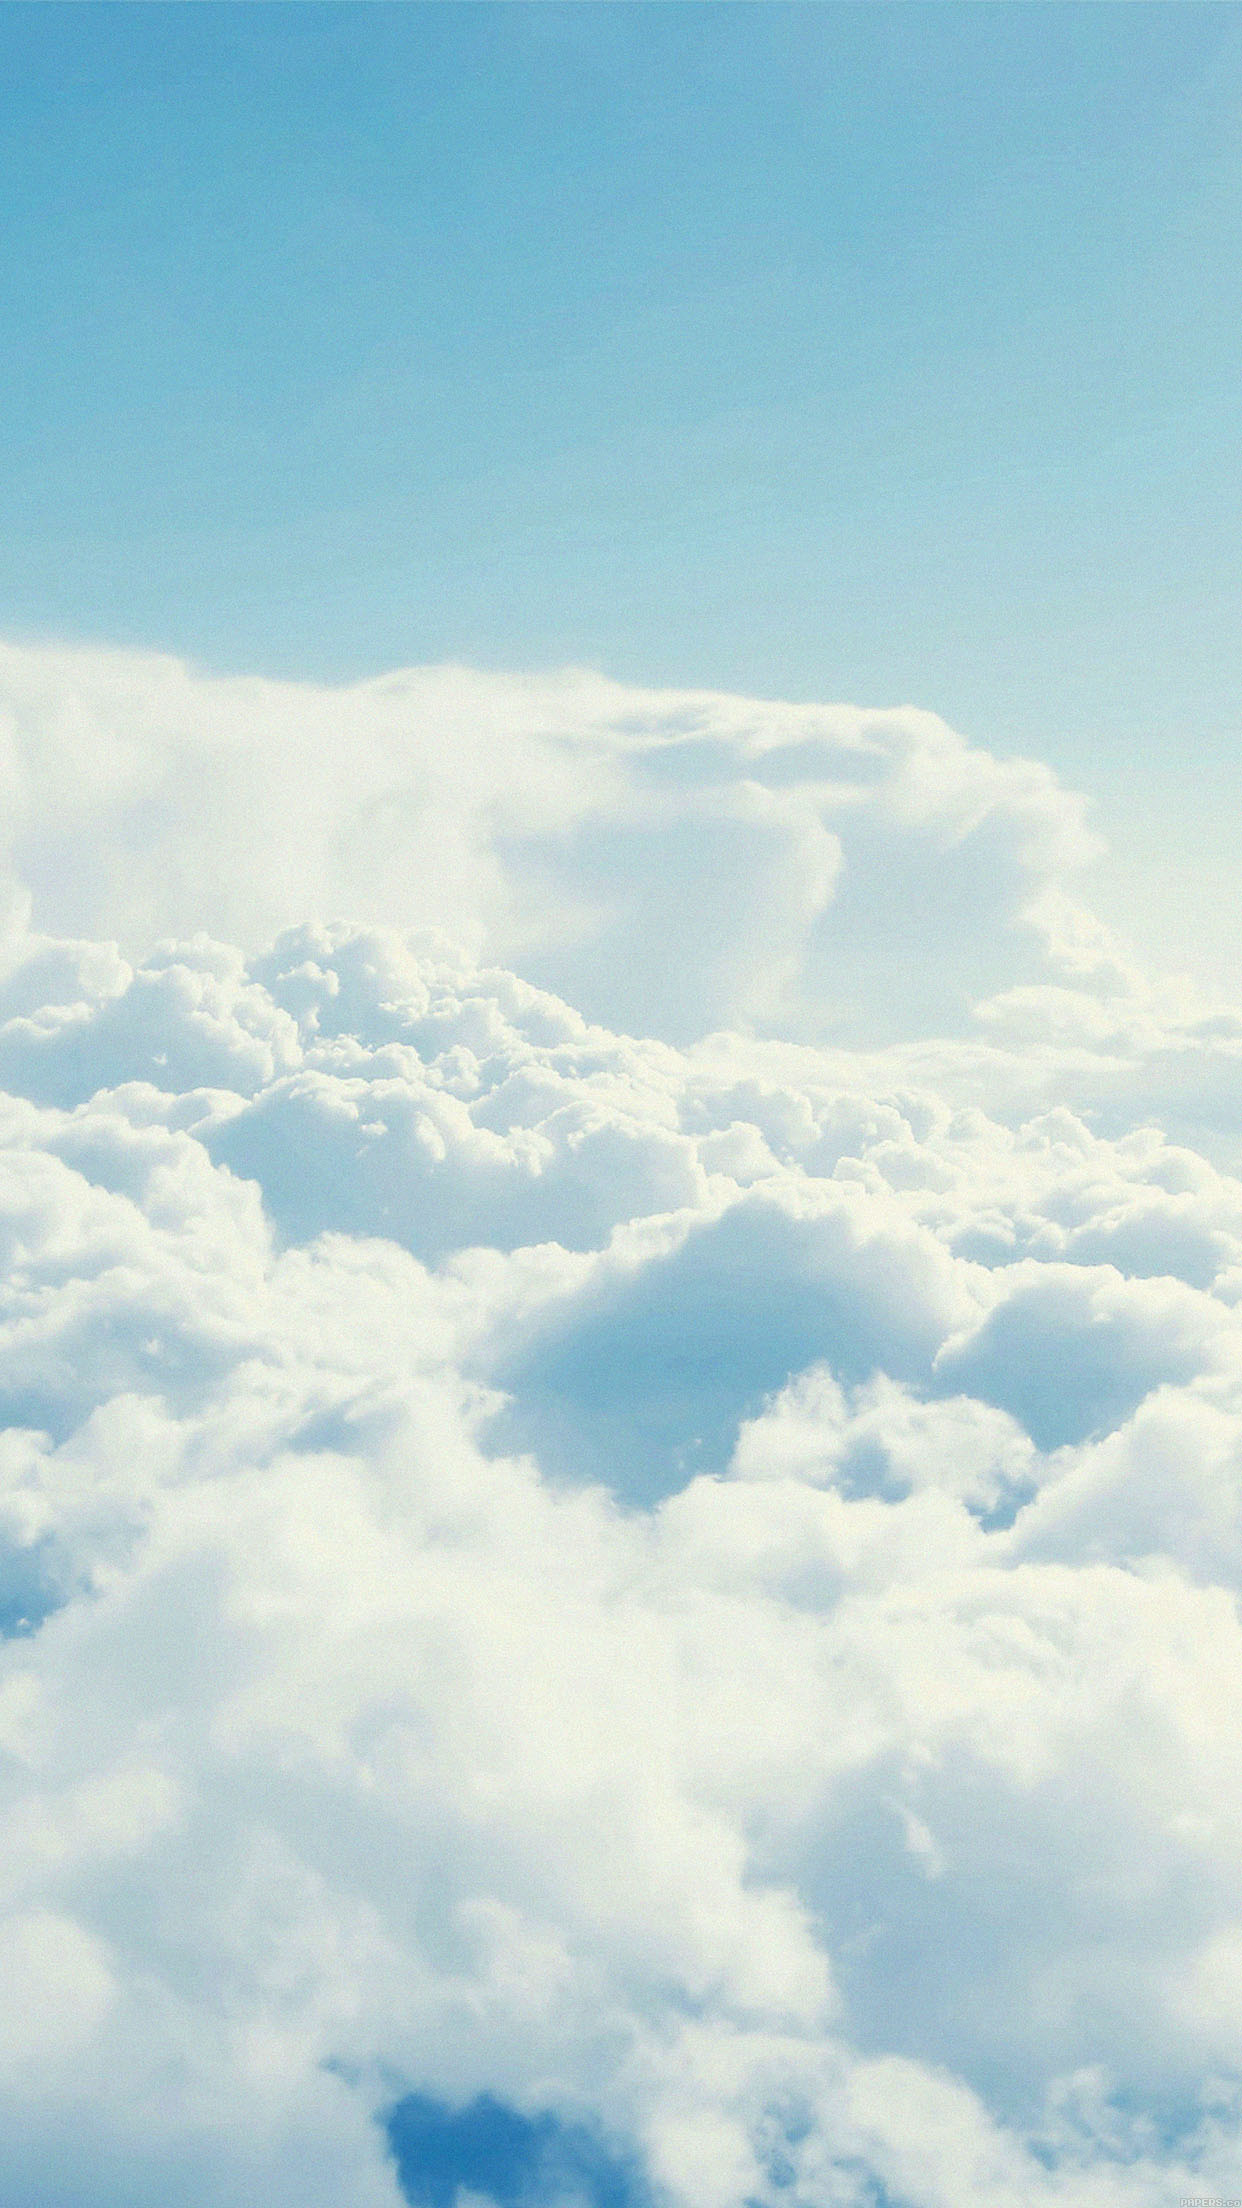 Cute Hd Wallpapers For Phone Mb82 Wallpaper 16 I Cloud Level Sky Papers Co